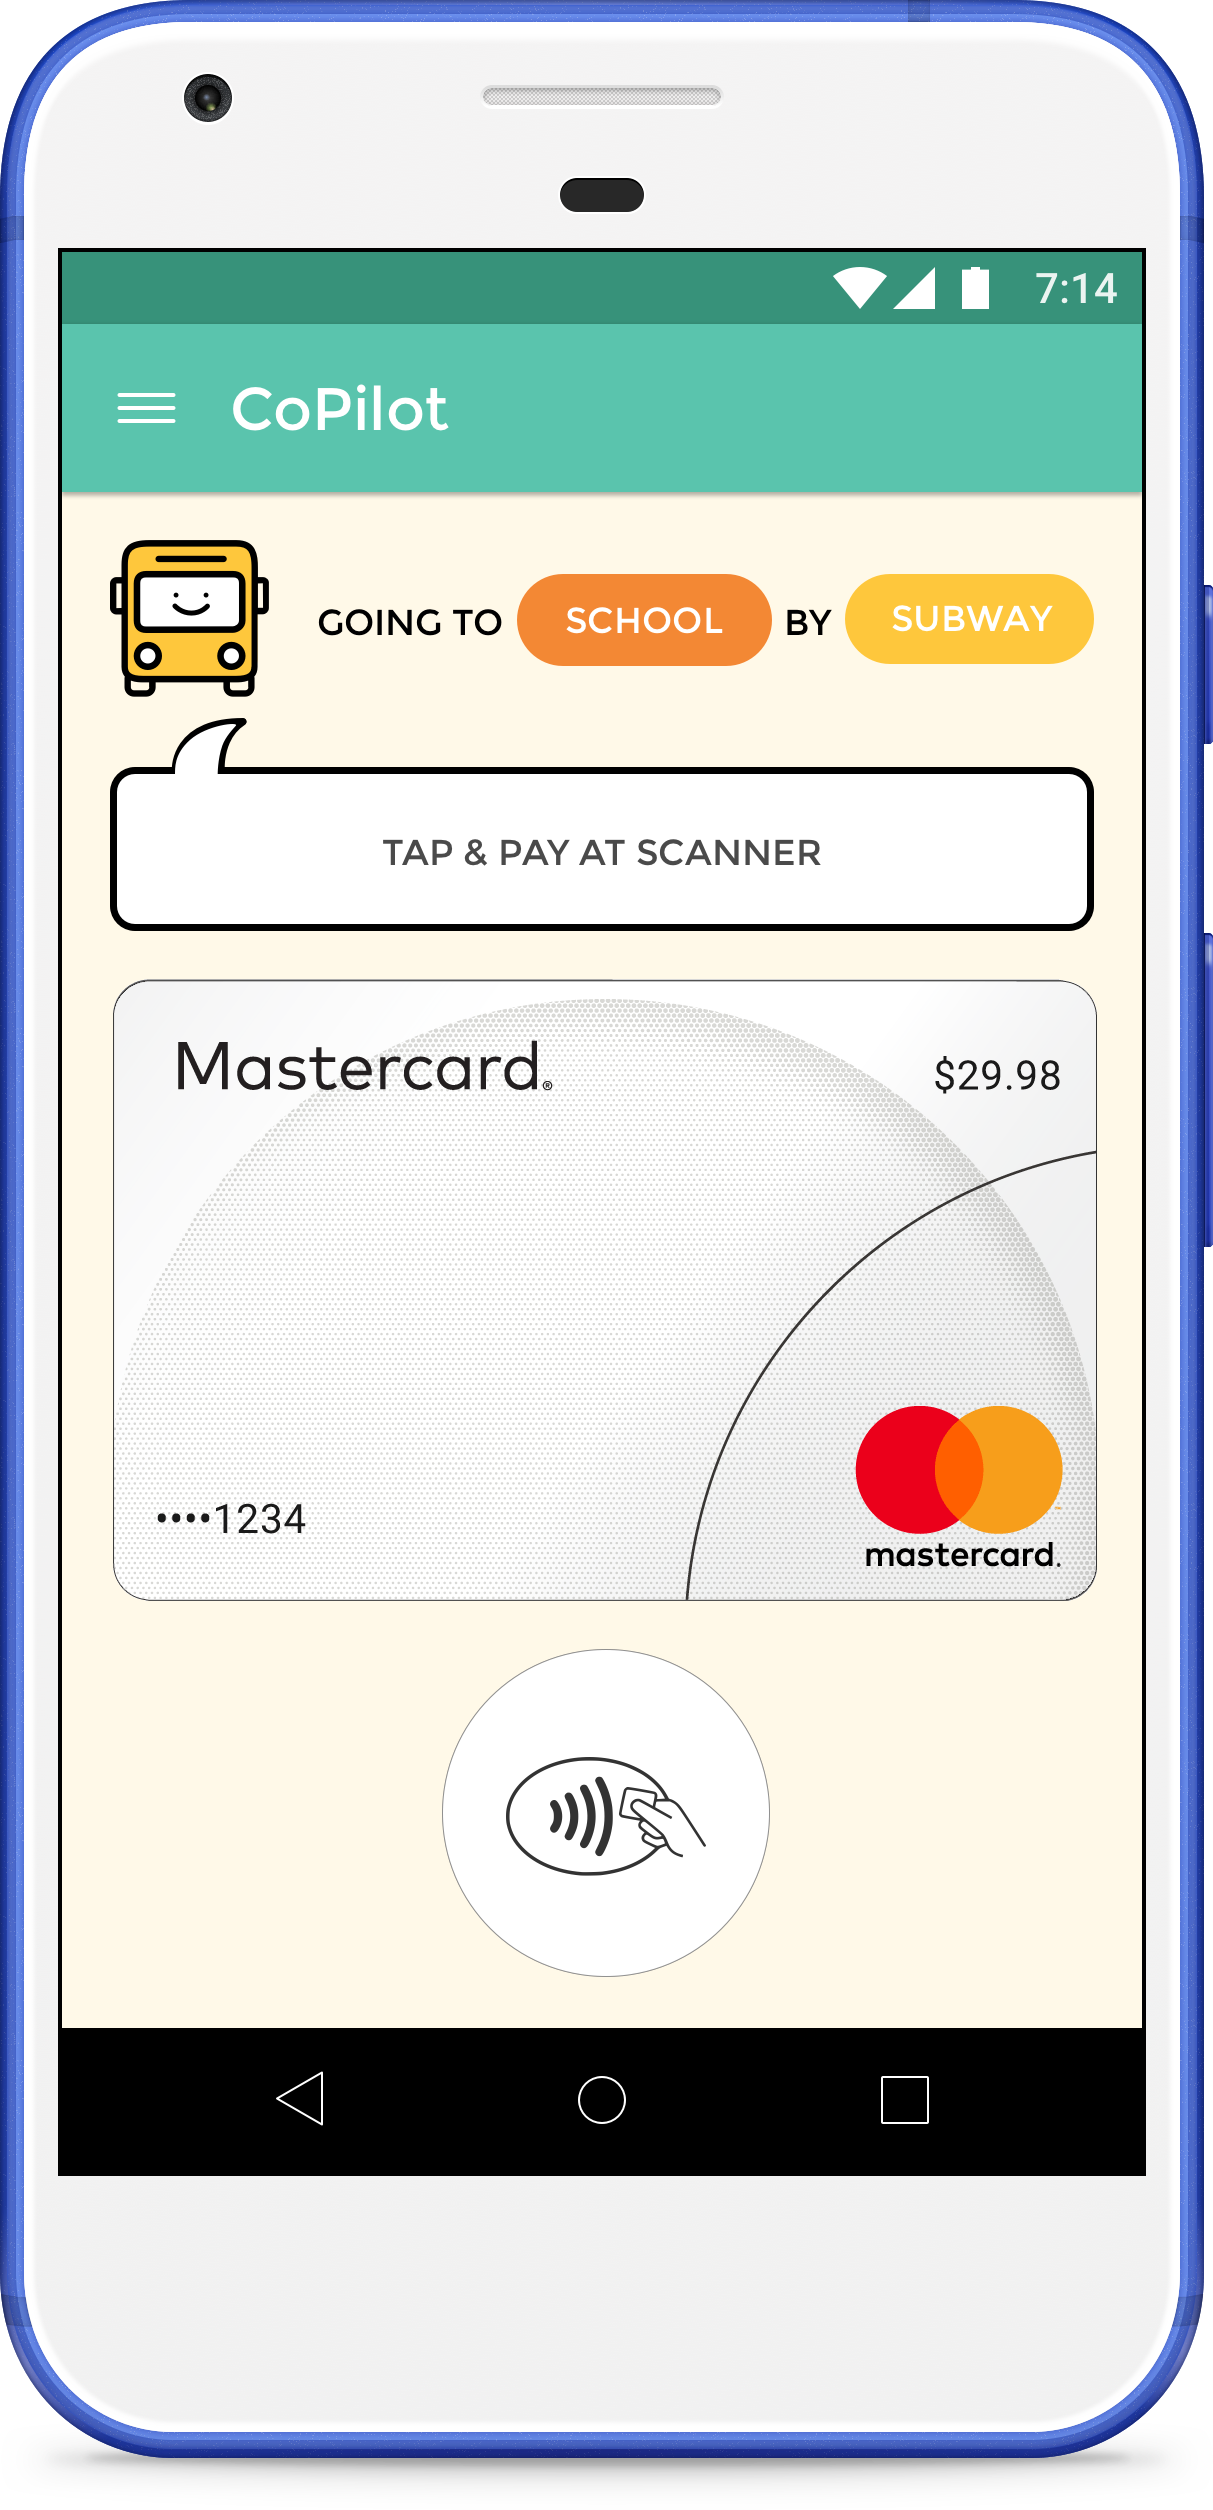 Tap & pay screen